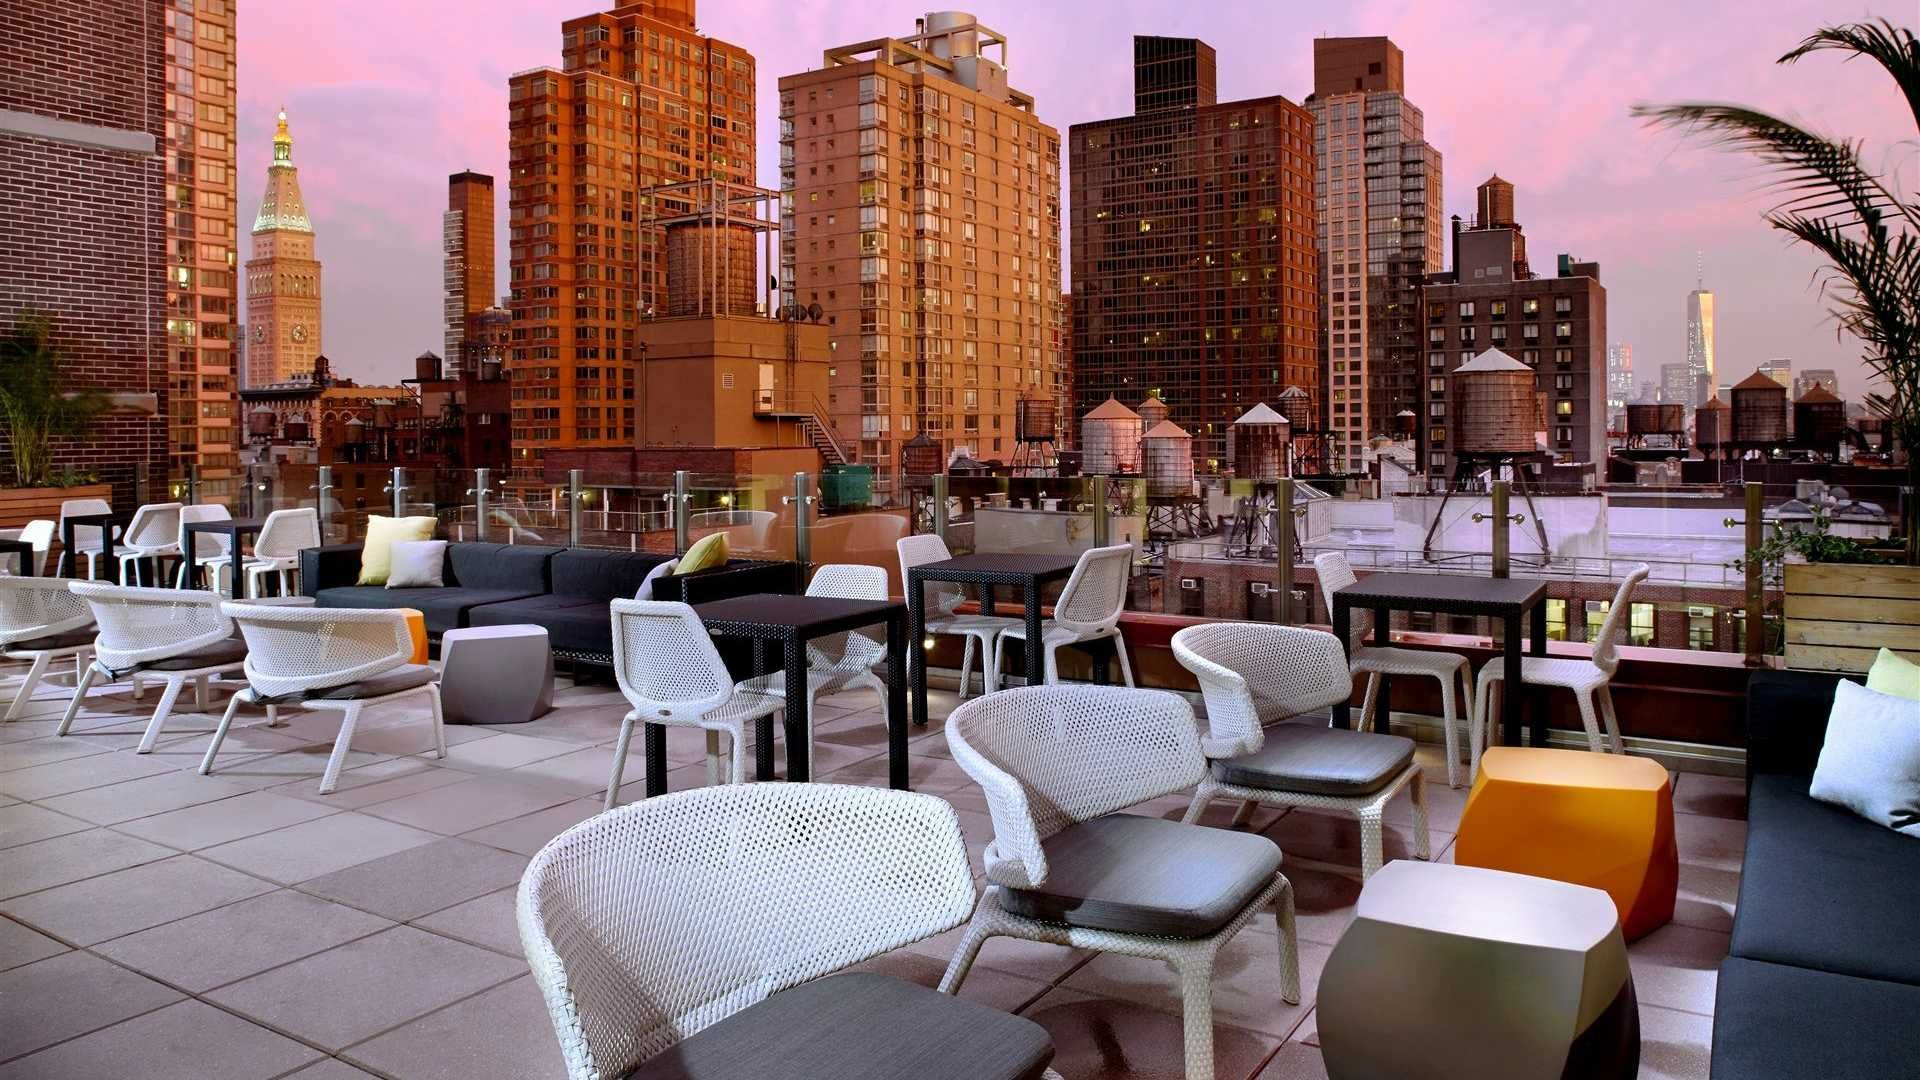 Hotels In New York City >> Chelsea Hotel Cambria Hotel Suites New York City Hotel